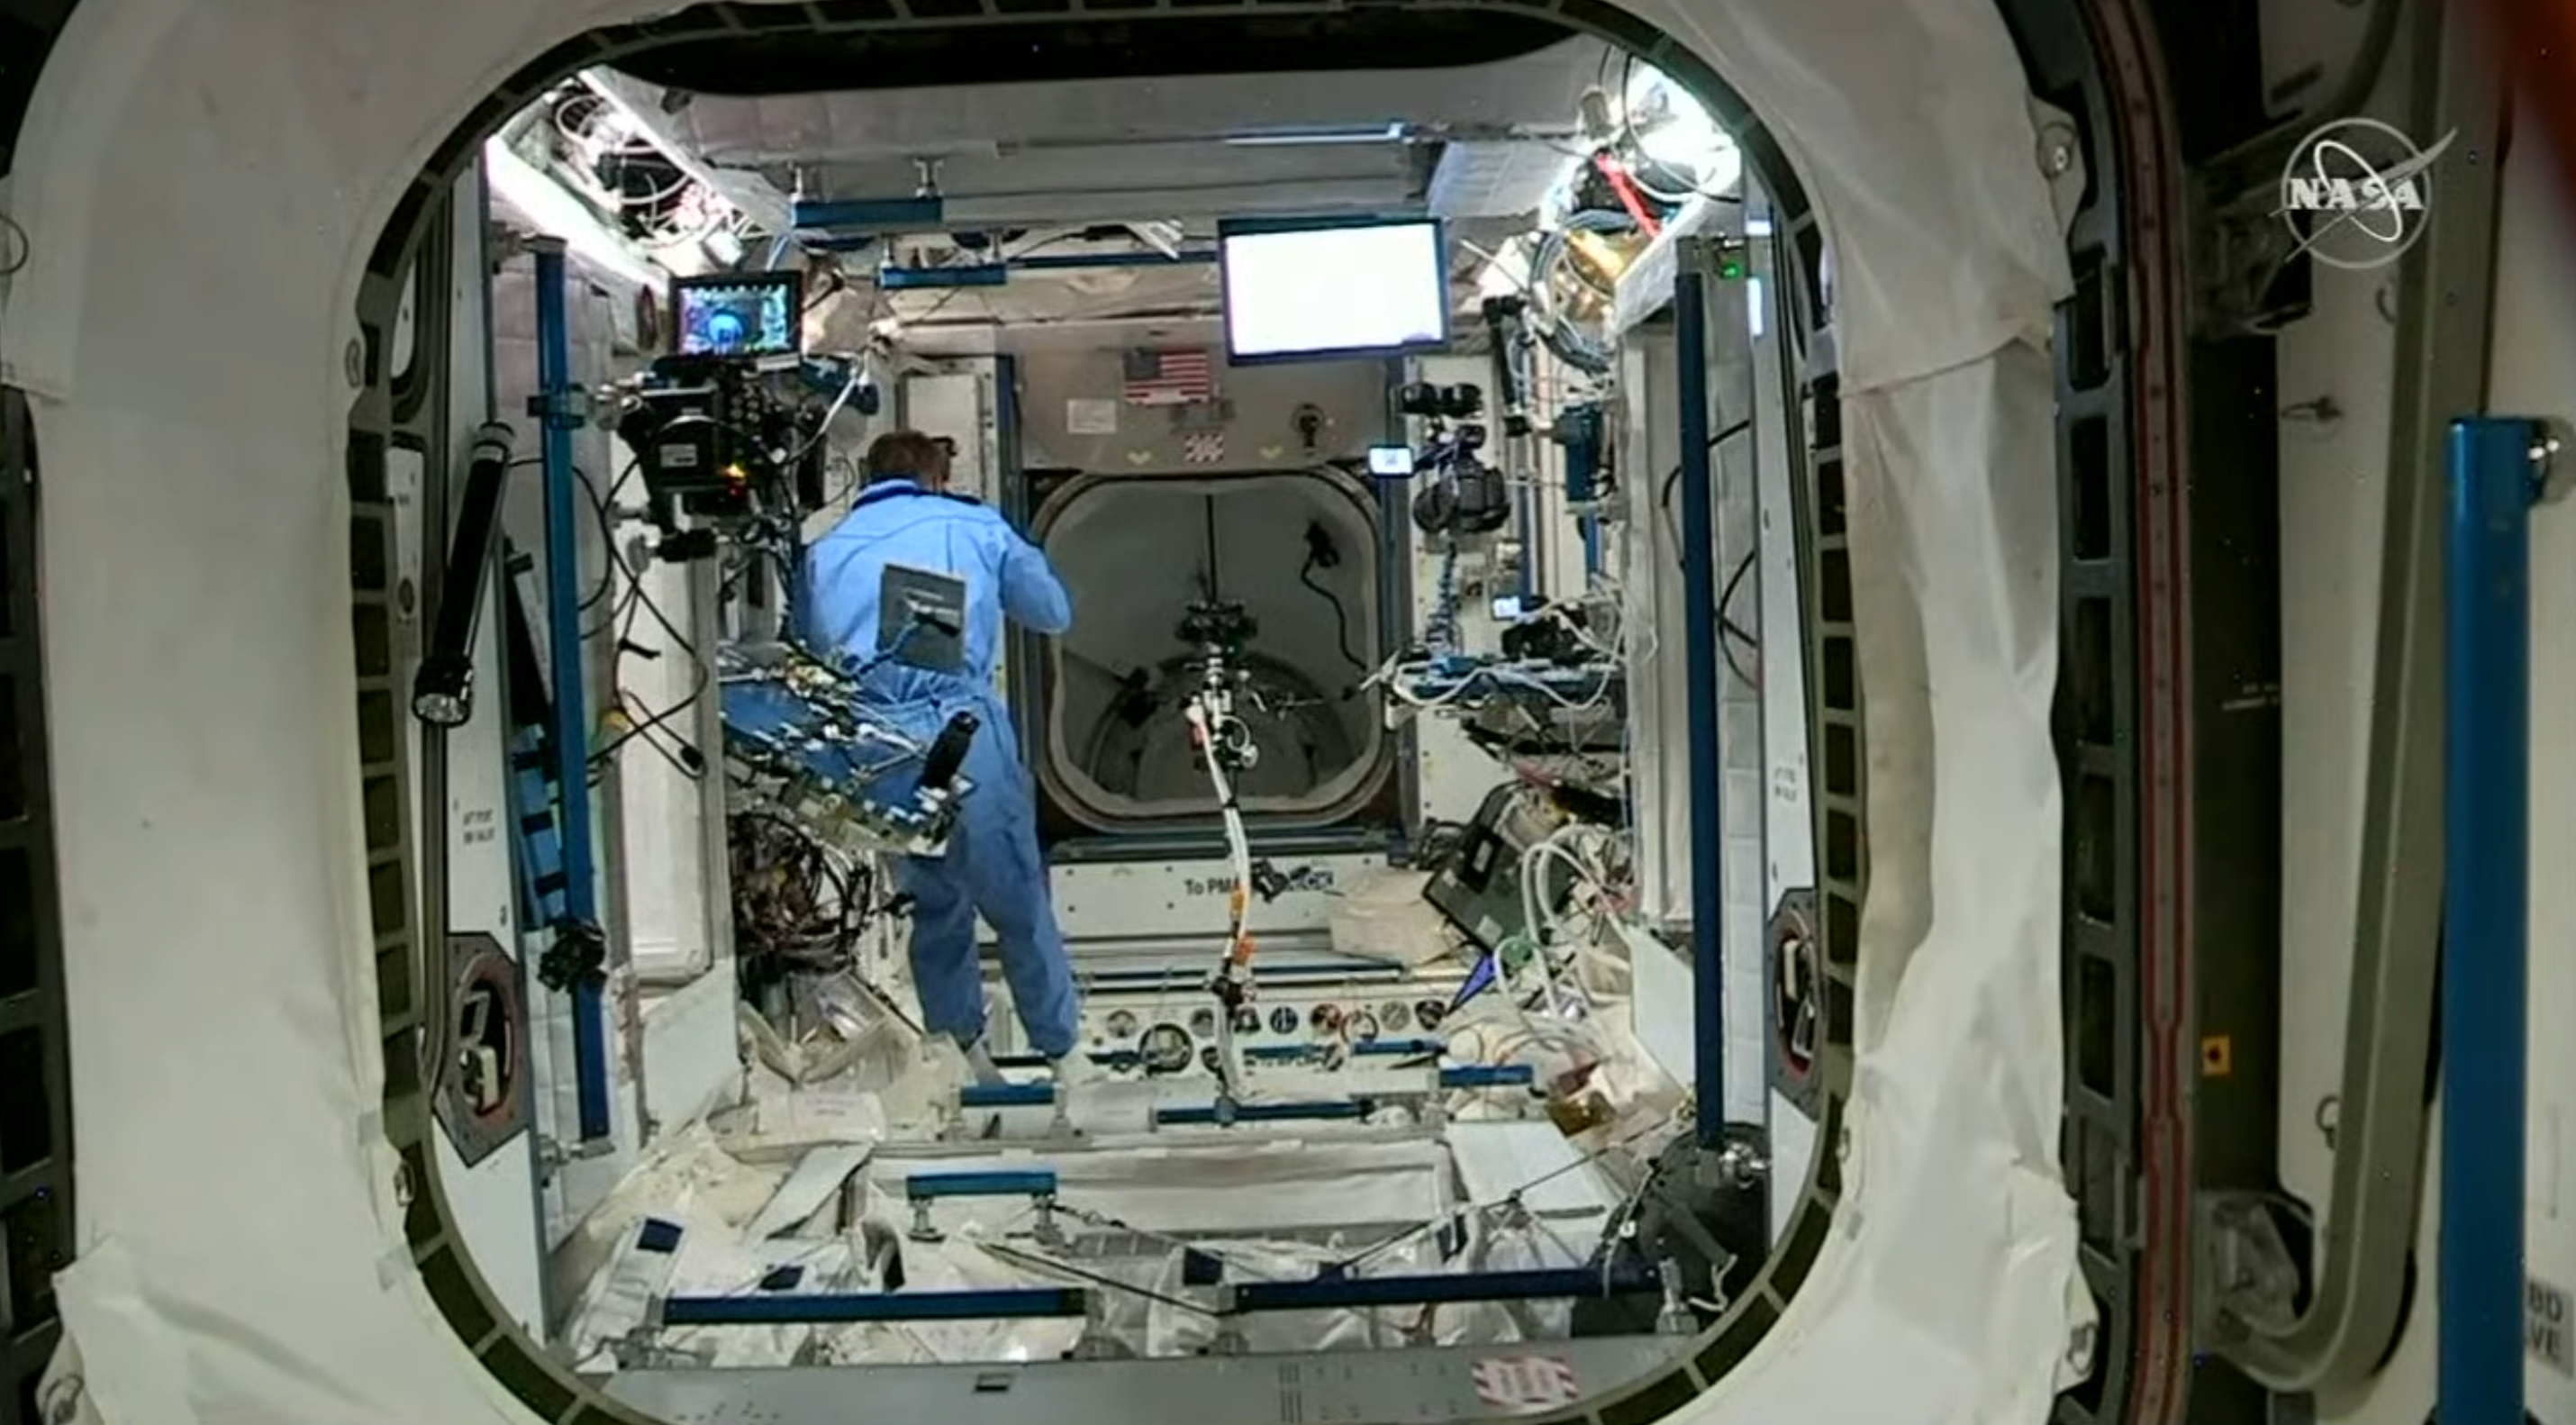 NASA Chris Cassidy DRAGON DM 2 CREW BOARDING ISS